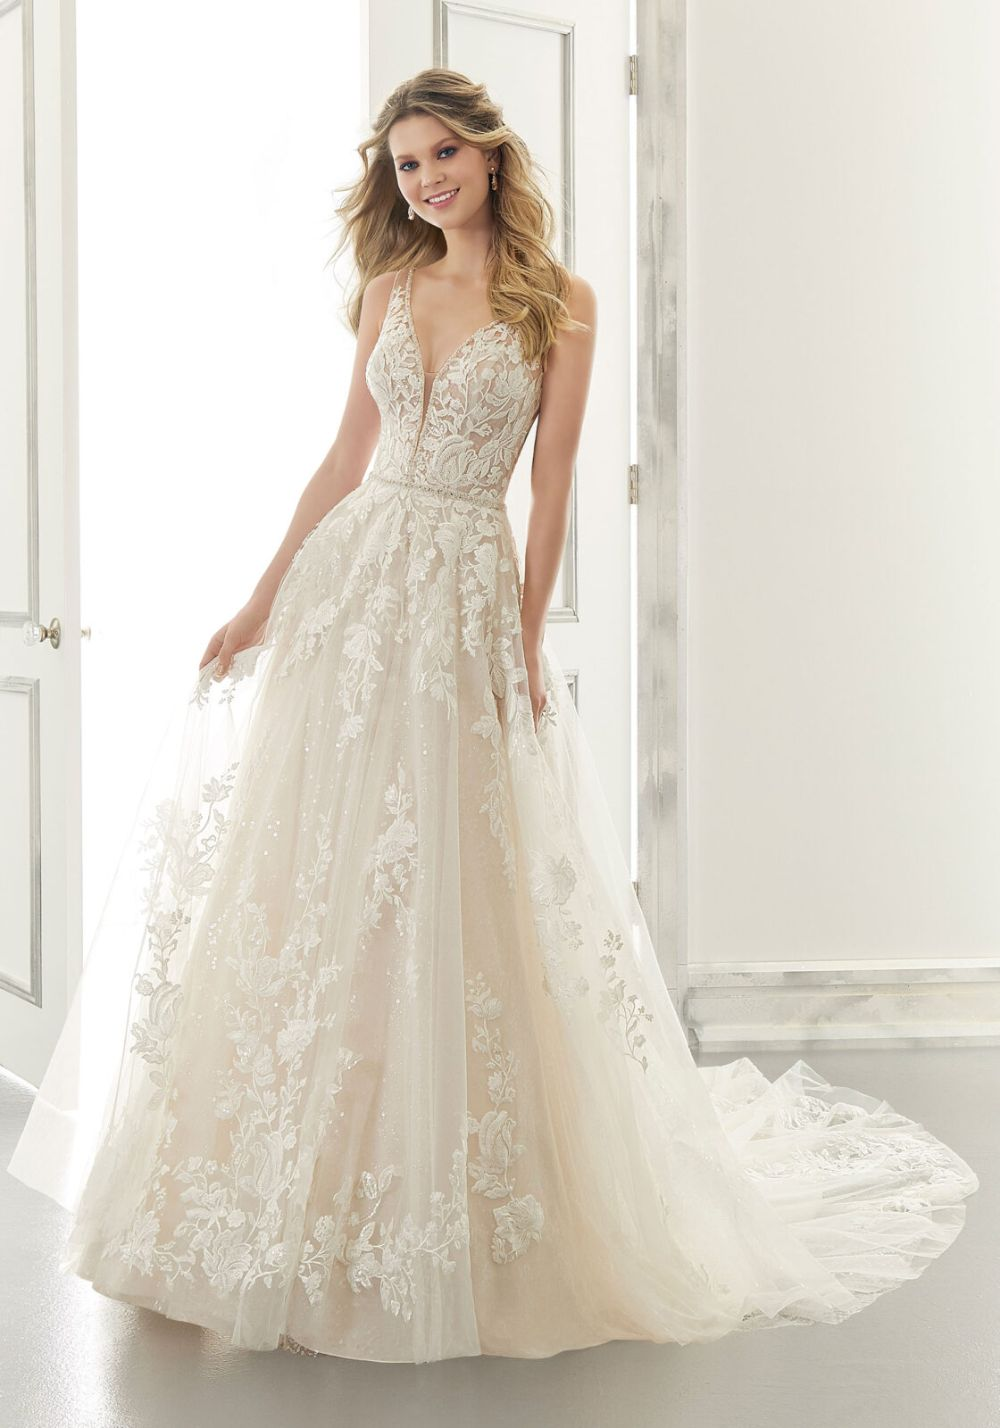 ANA 2179 by Mori Lee by Madeline Gardner